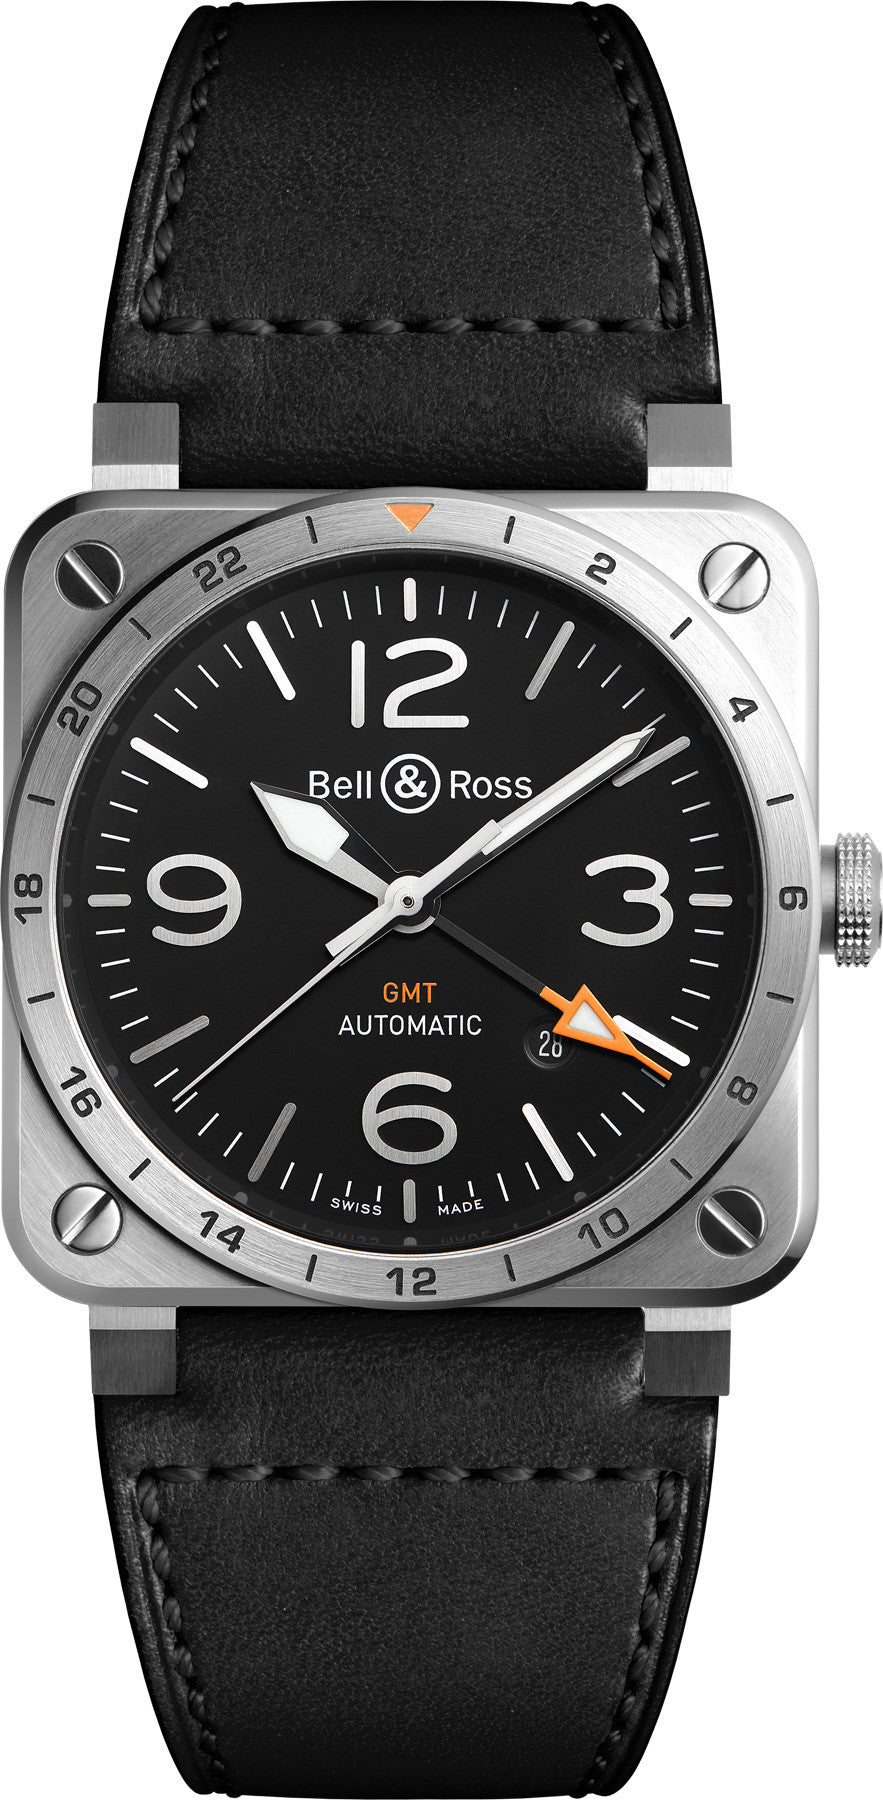 Bell & Ross Watch BR 03 93 GMT